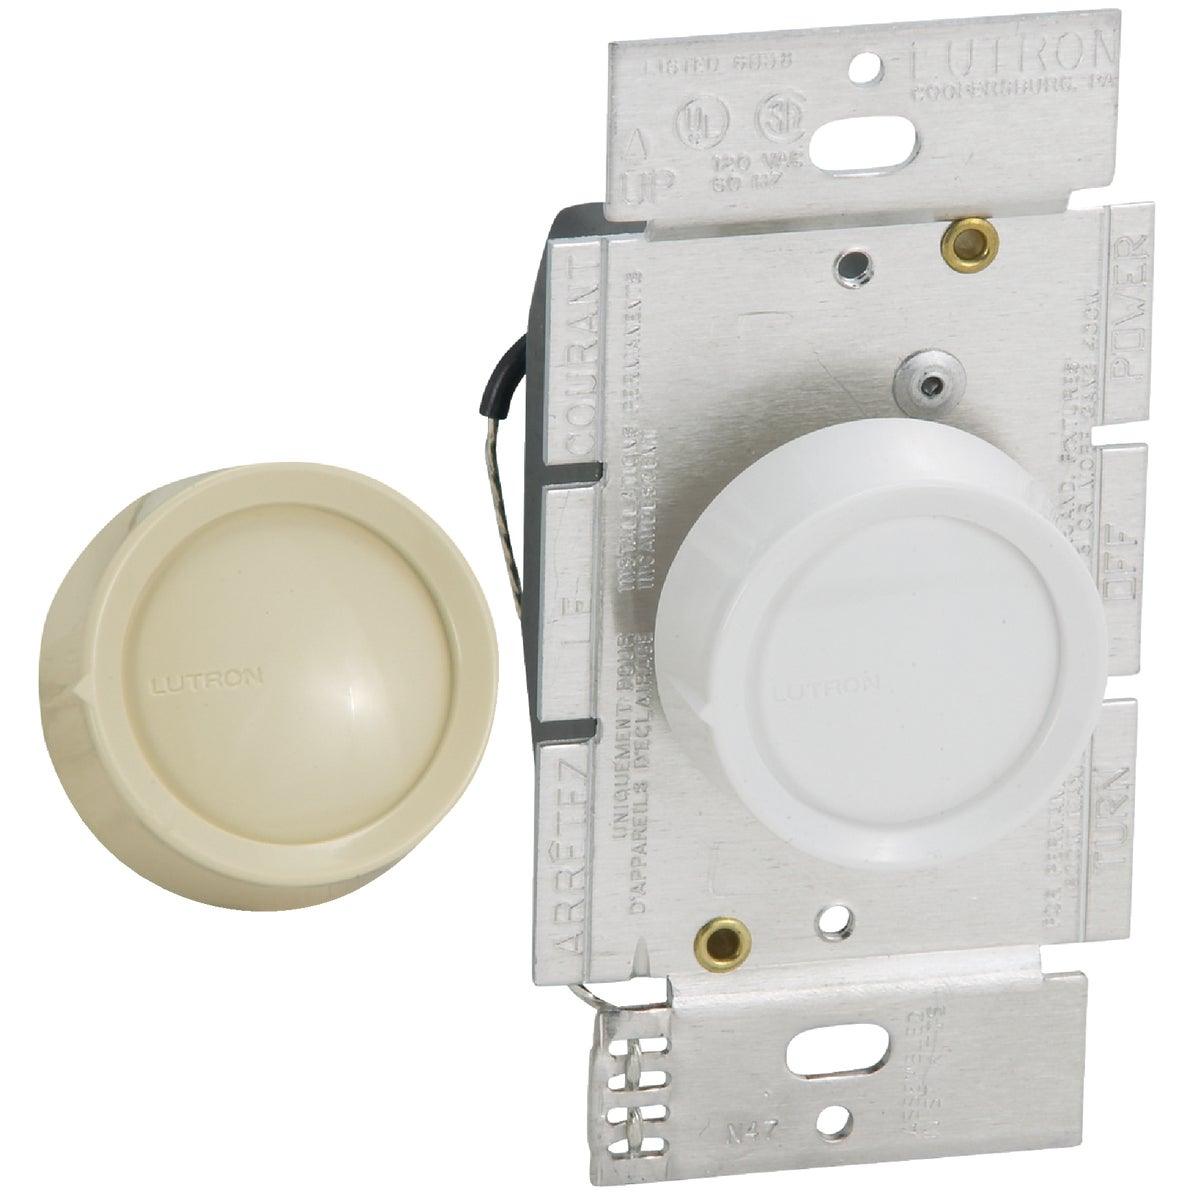 WHT/IV ROTARY DIMMER - D-600RH-DK by Lutron Elect Co Inc